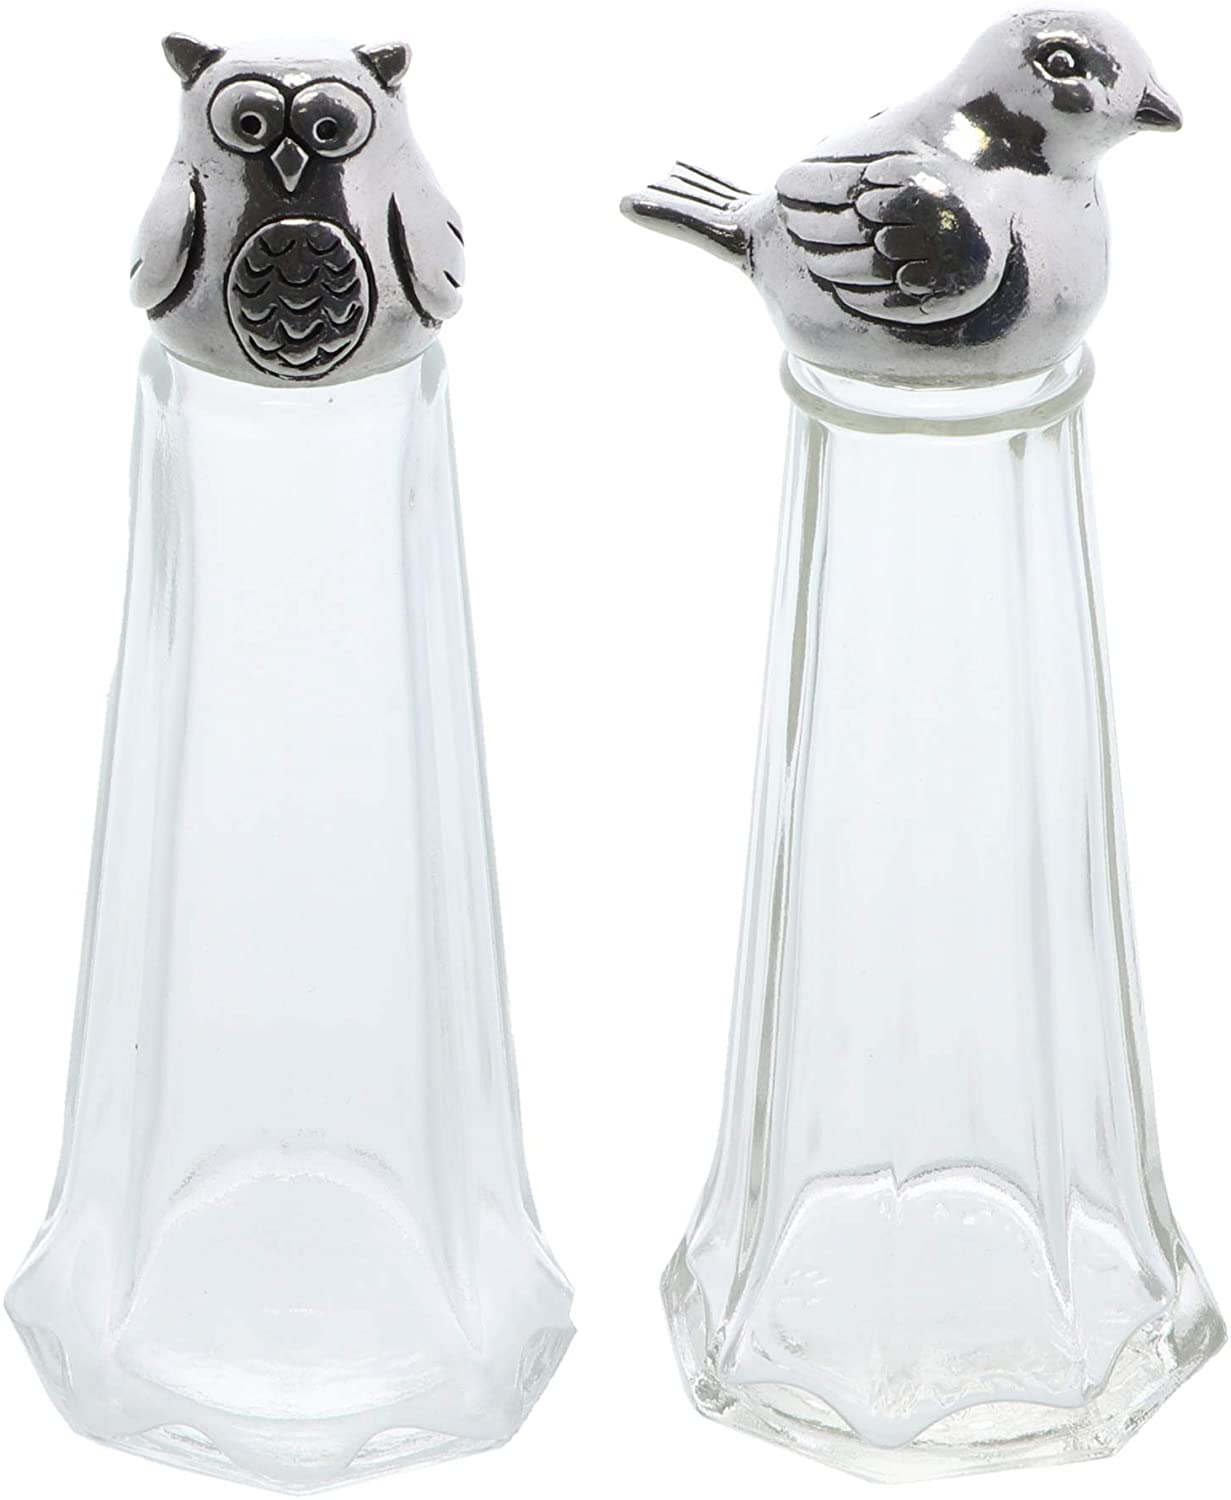 Salt and Pepper Shaker Set Glass with Pewter Top - Bird and Owl